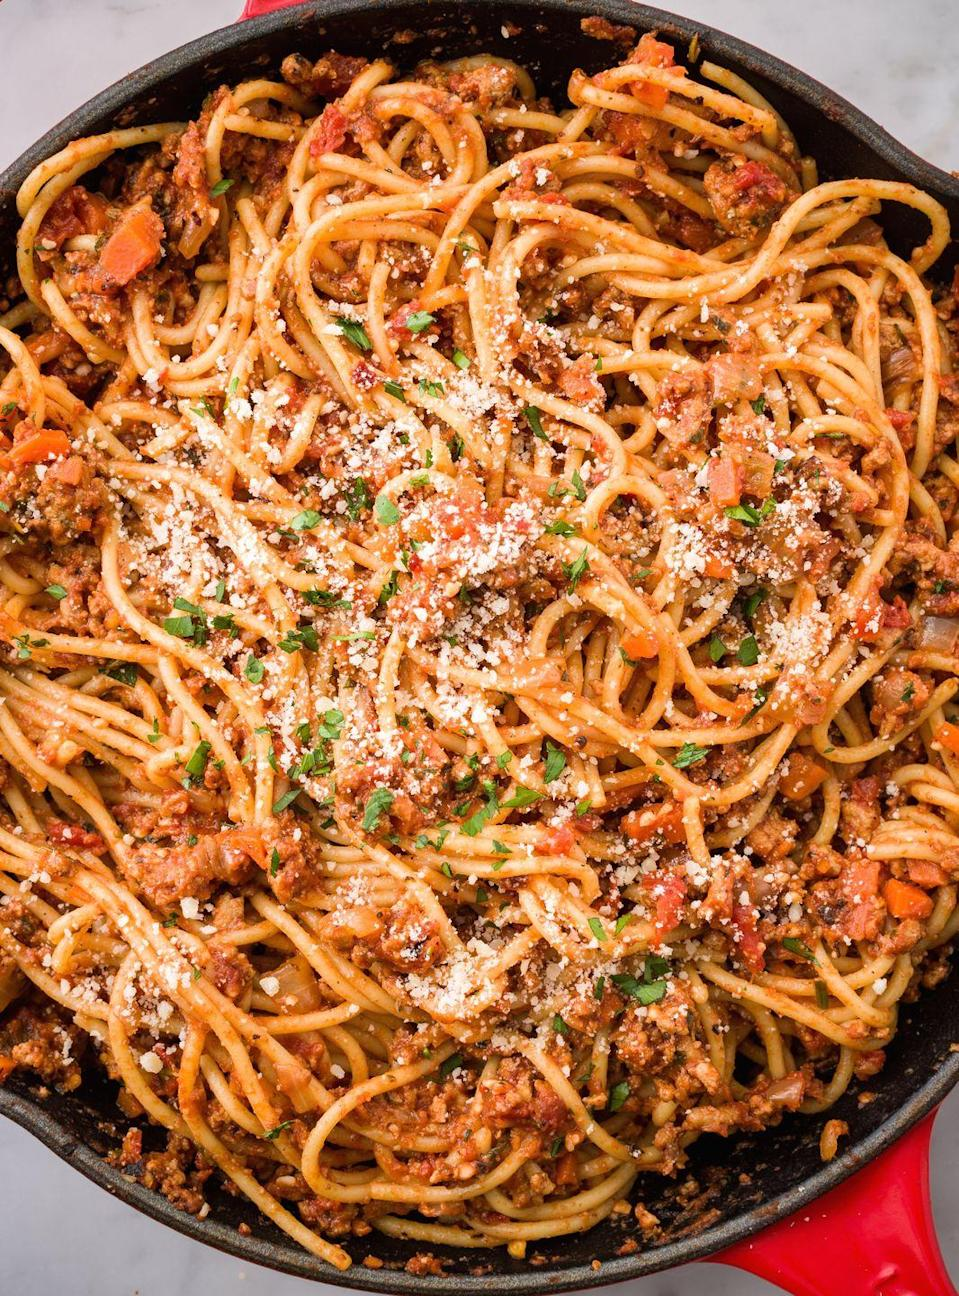 """<p>Anything beef can do, turkey can do better.</p><p>Get the recipe from <a href=""""/cooking/recipe-ideas/recipes/a45776/spaghetti-with-turkey-ragu-recipe/"""" data-ylk=""""slk:Delish"""" class=""""link rapid-noclick-resp"""">Delish</a>. </p>"""